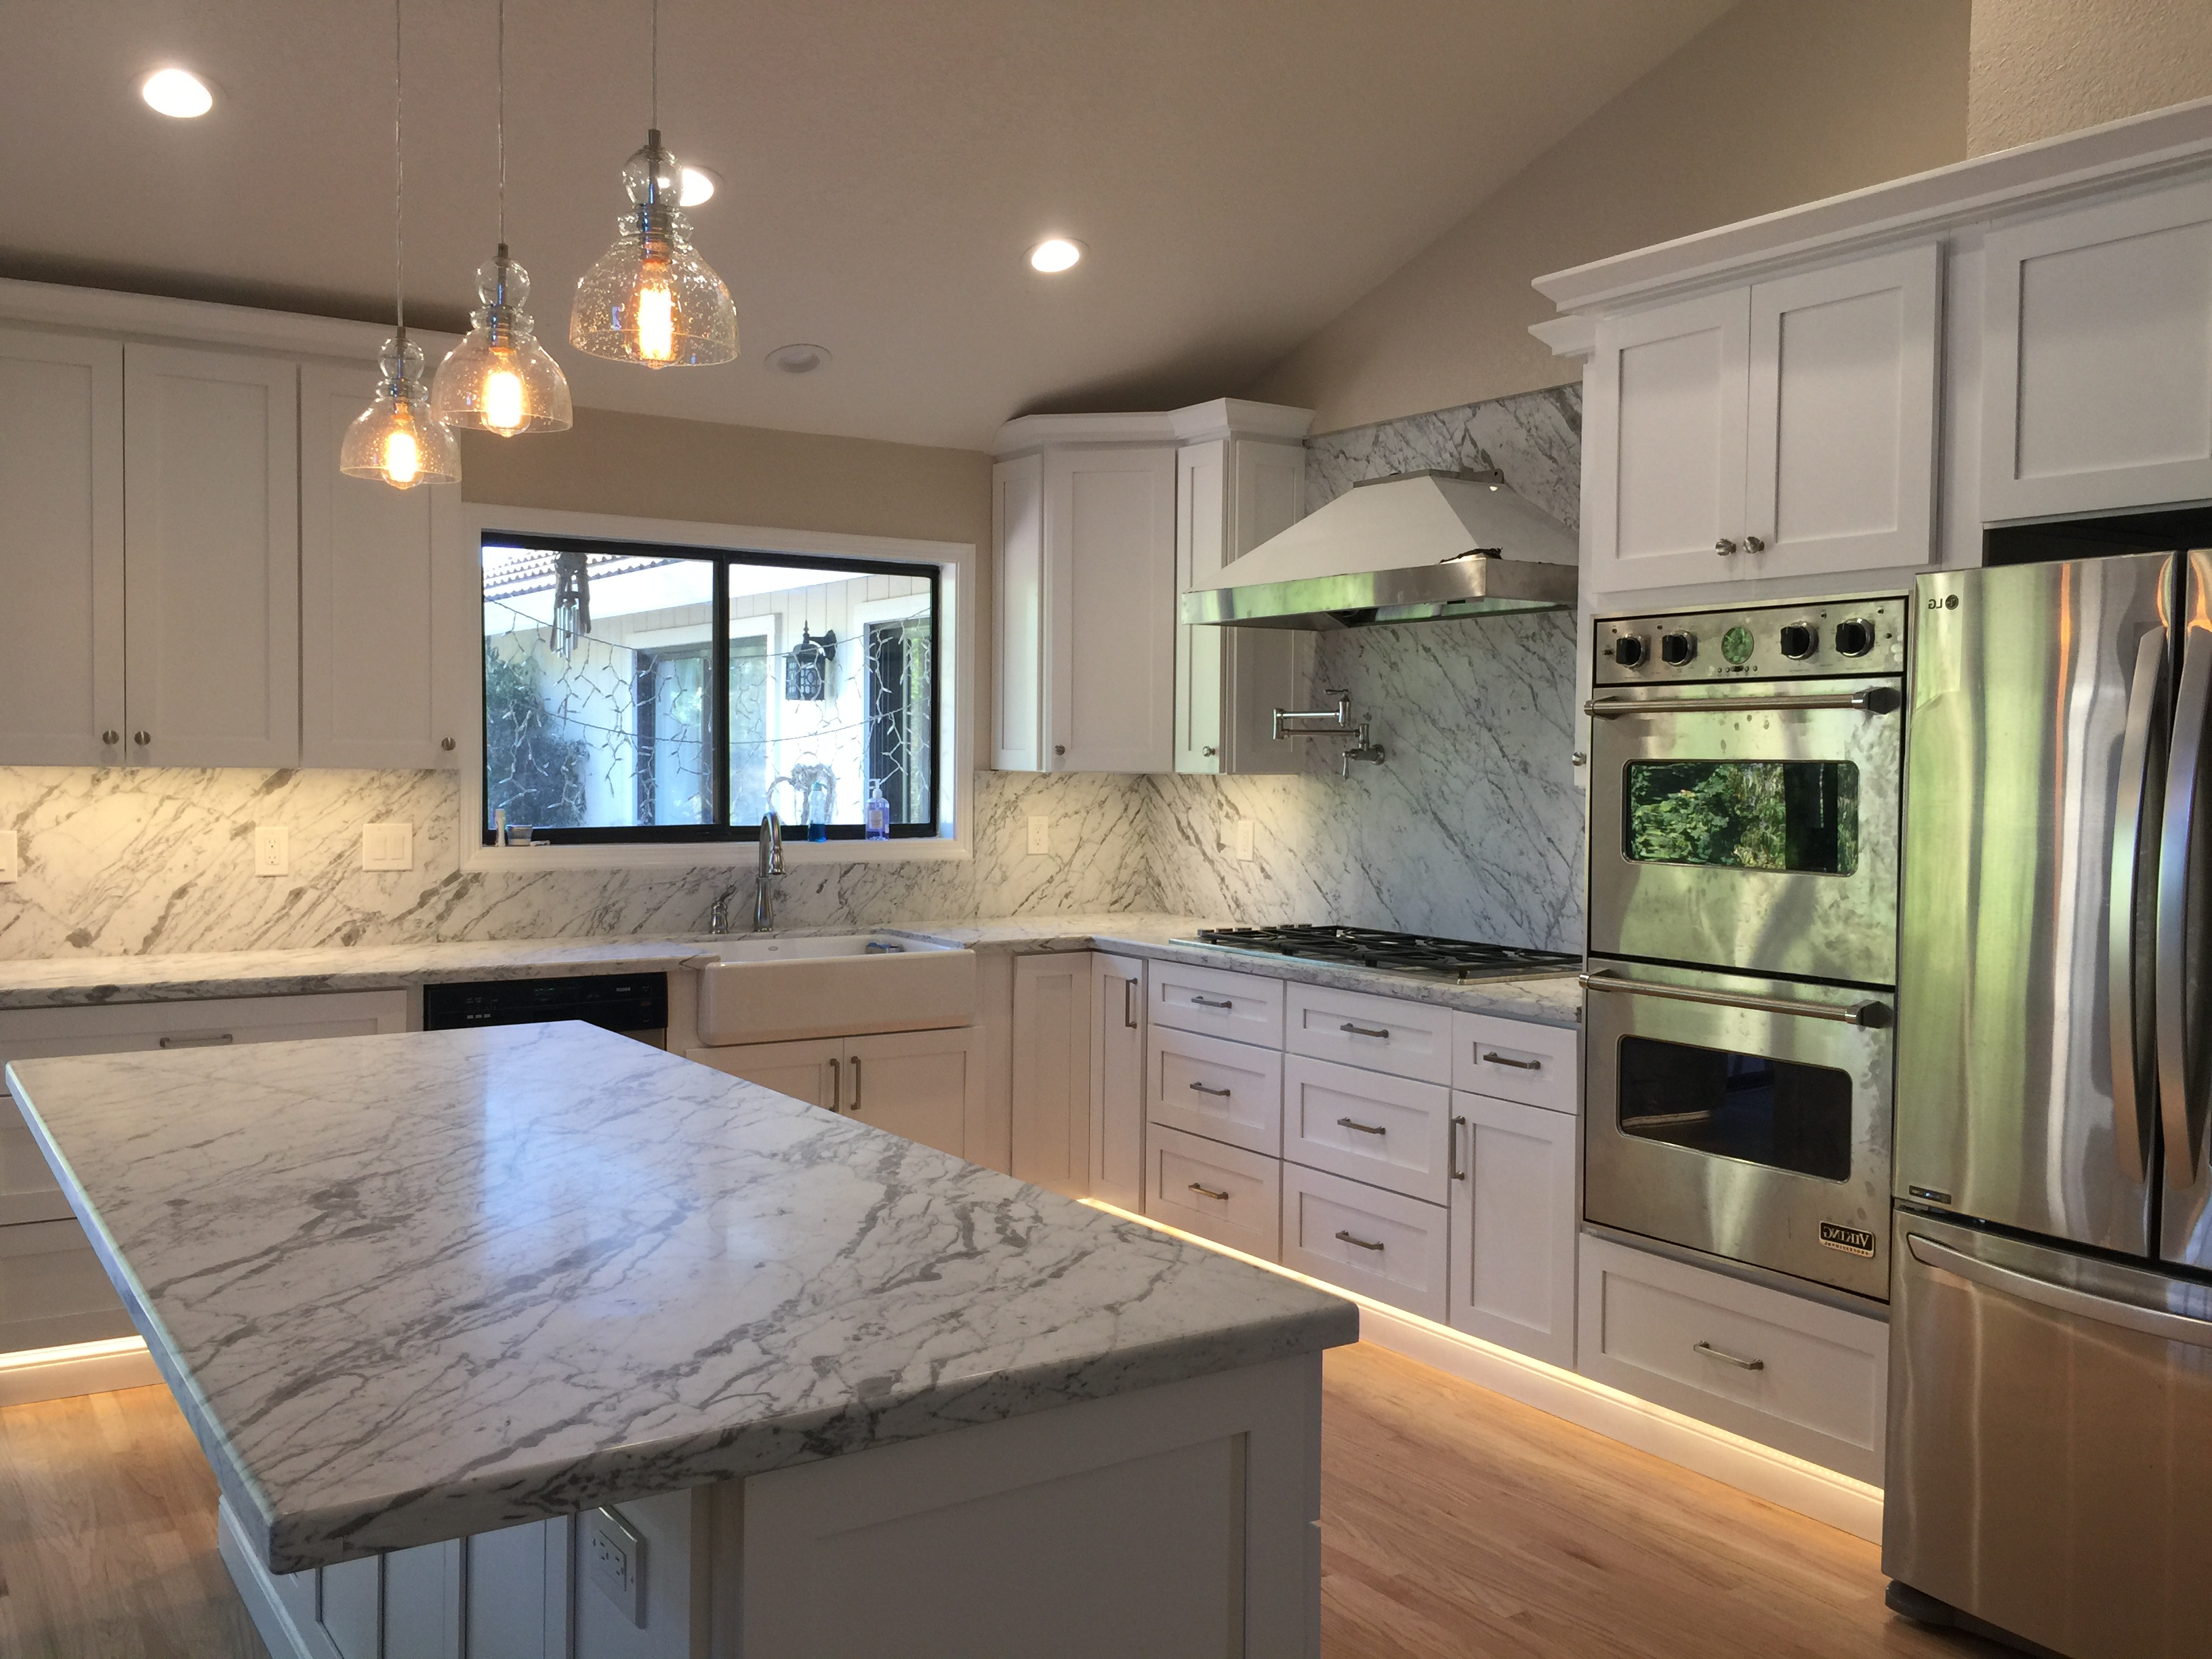 Soft White or Pure White Shaker Kitchen & Bath Cabinets